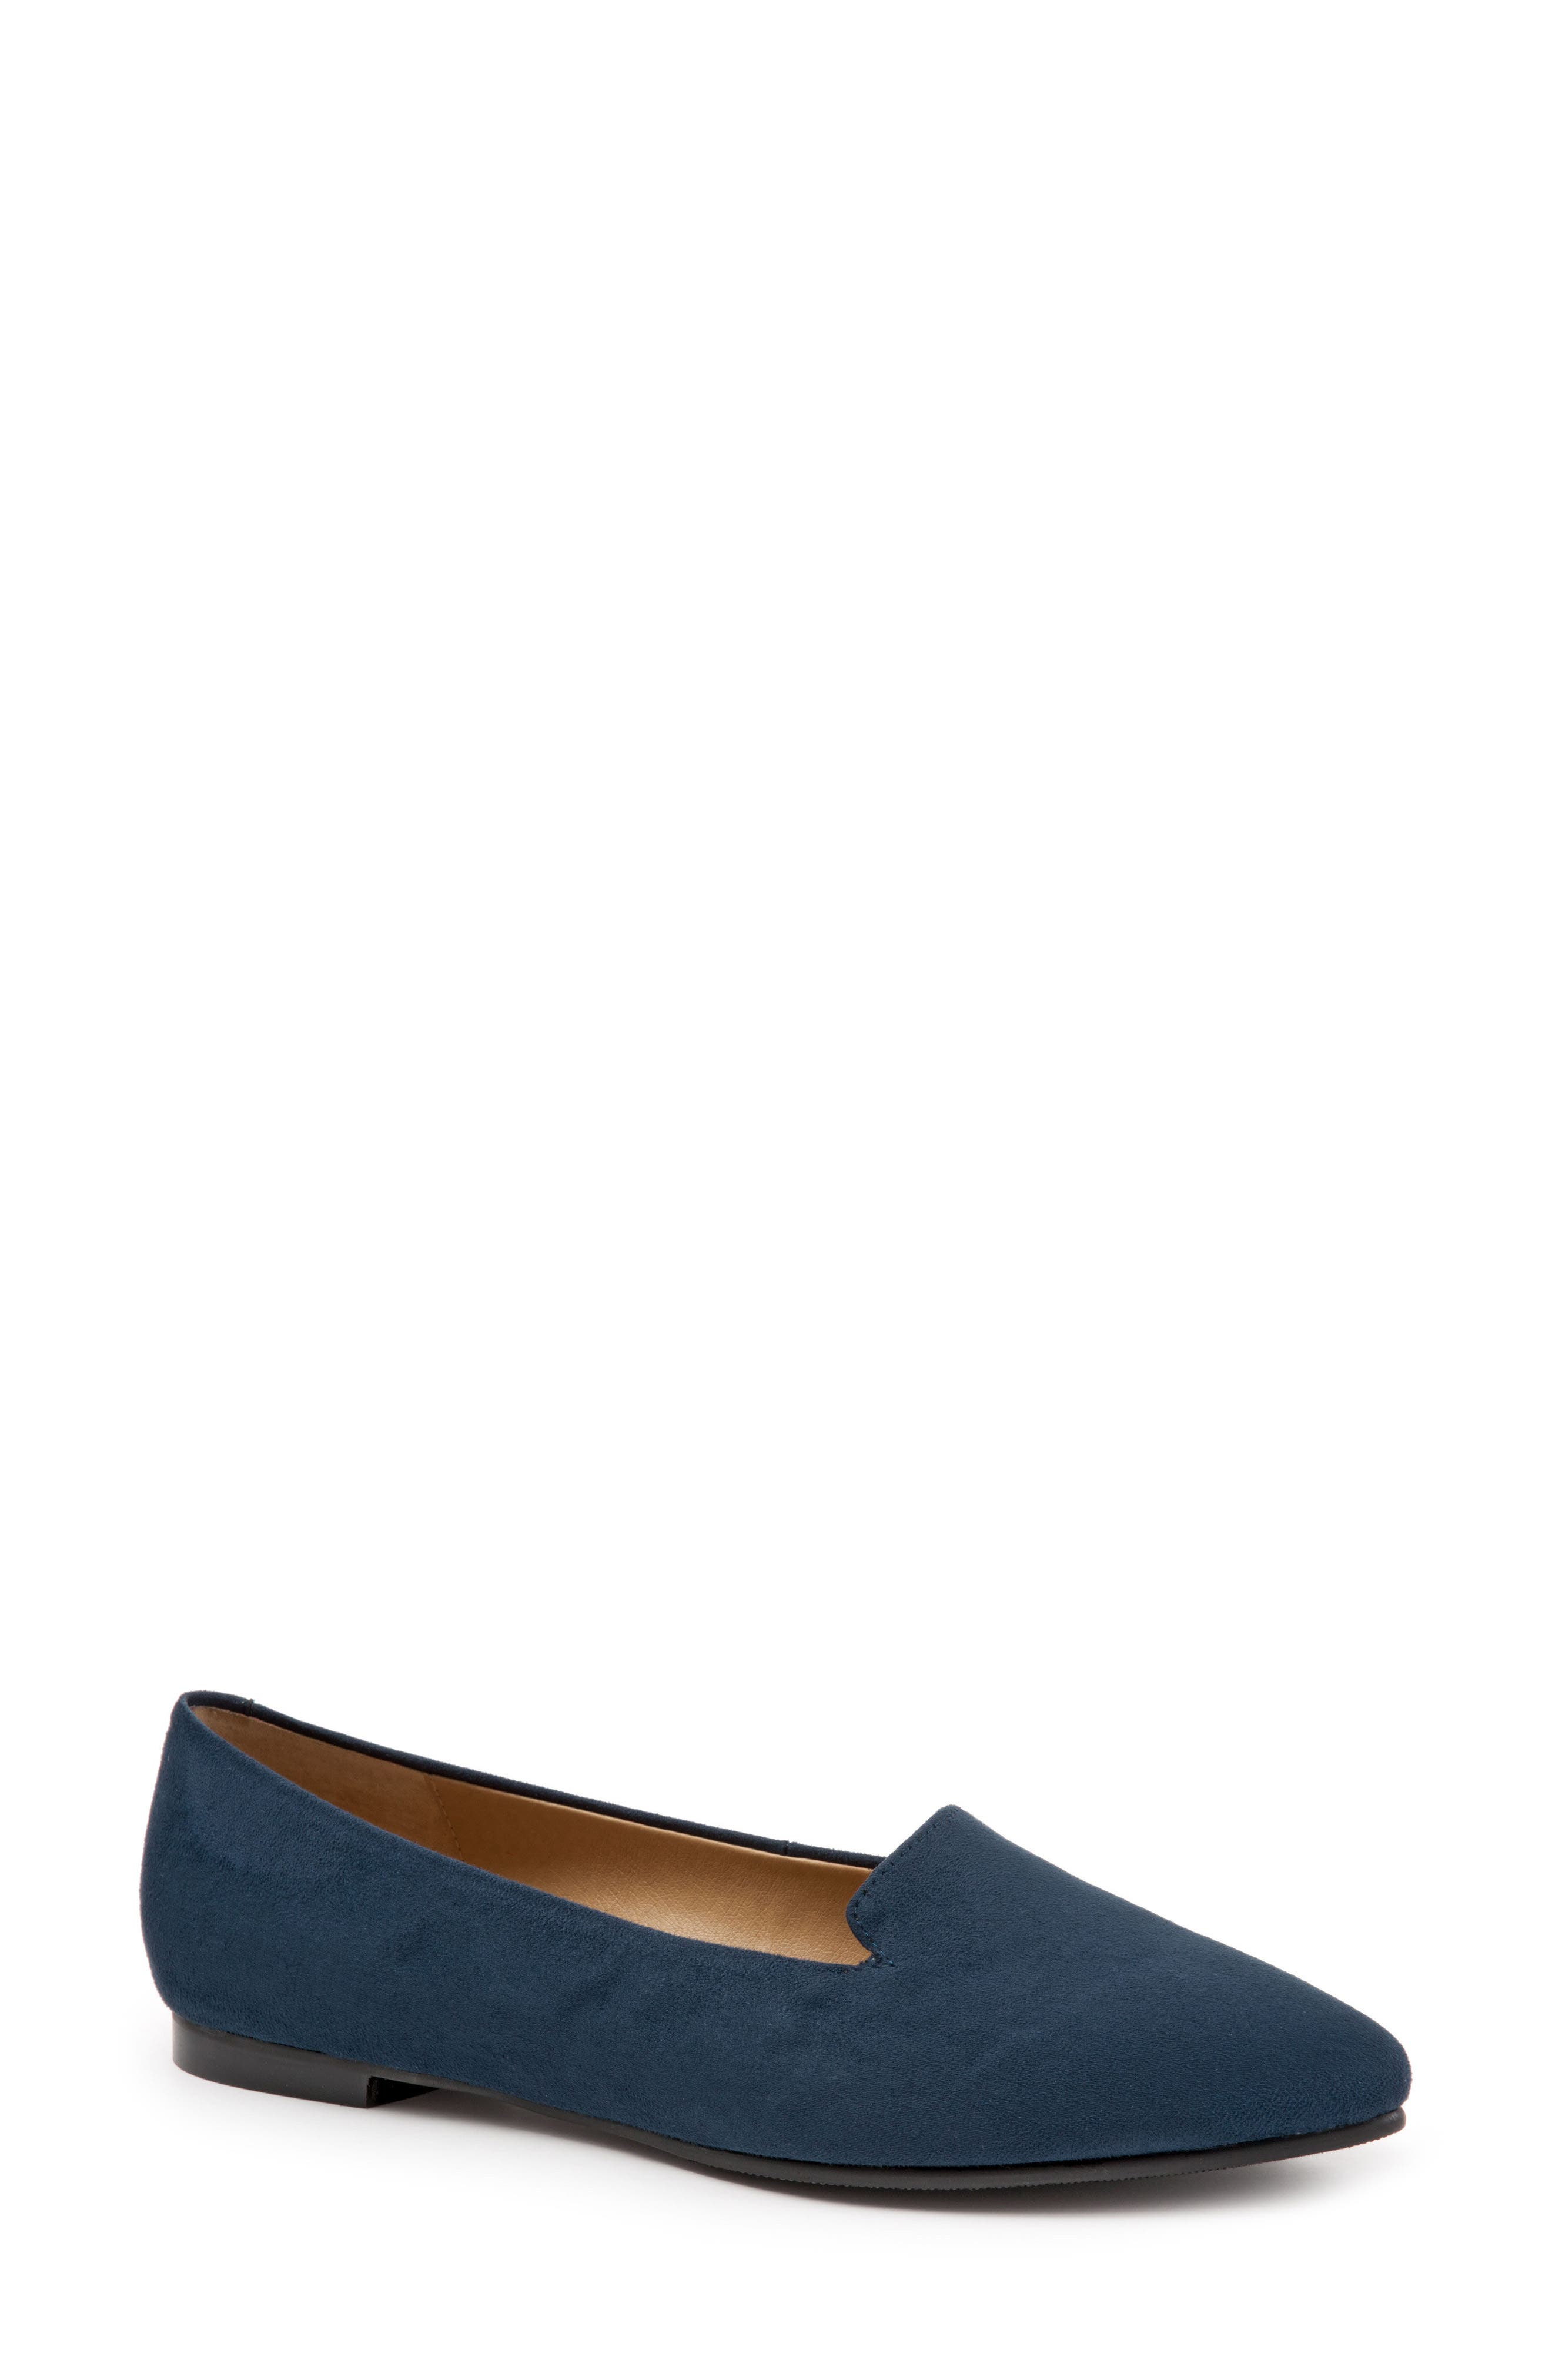 Harlowe Pointy Toe Loafer,                             Main thumbnail 1, color,                             Navy Leather